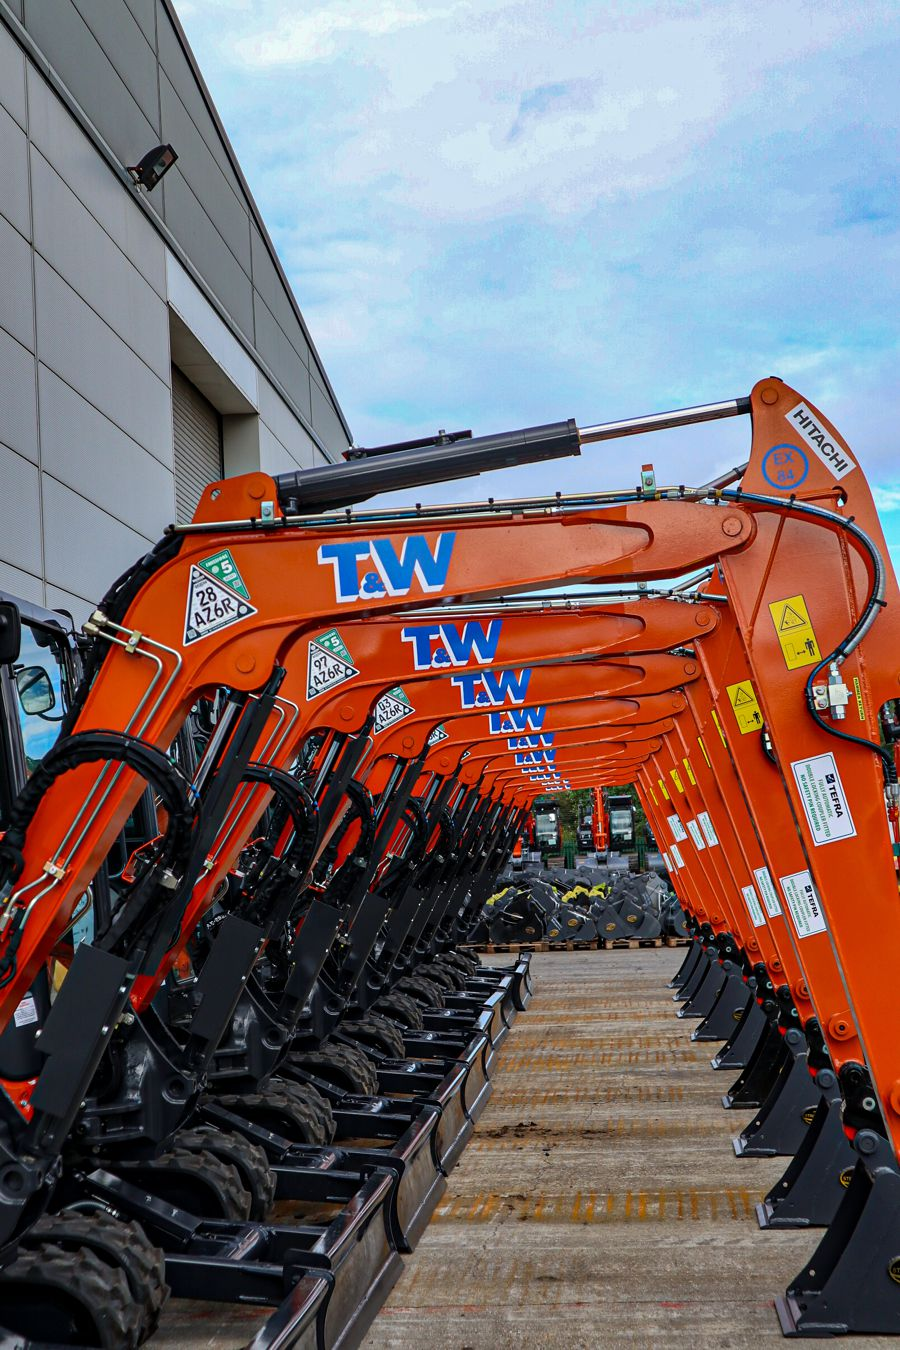 T & W Civil Engineering switch back to Hitachi with ten ZX33U-6 Excavators